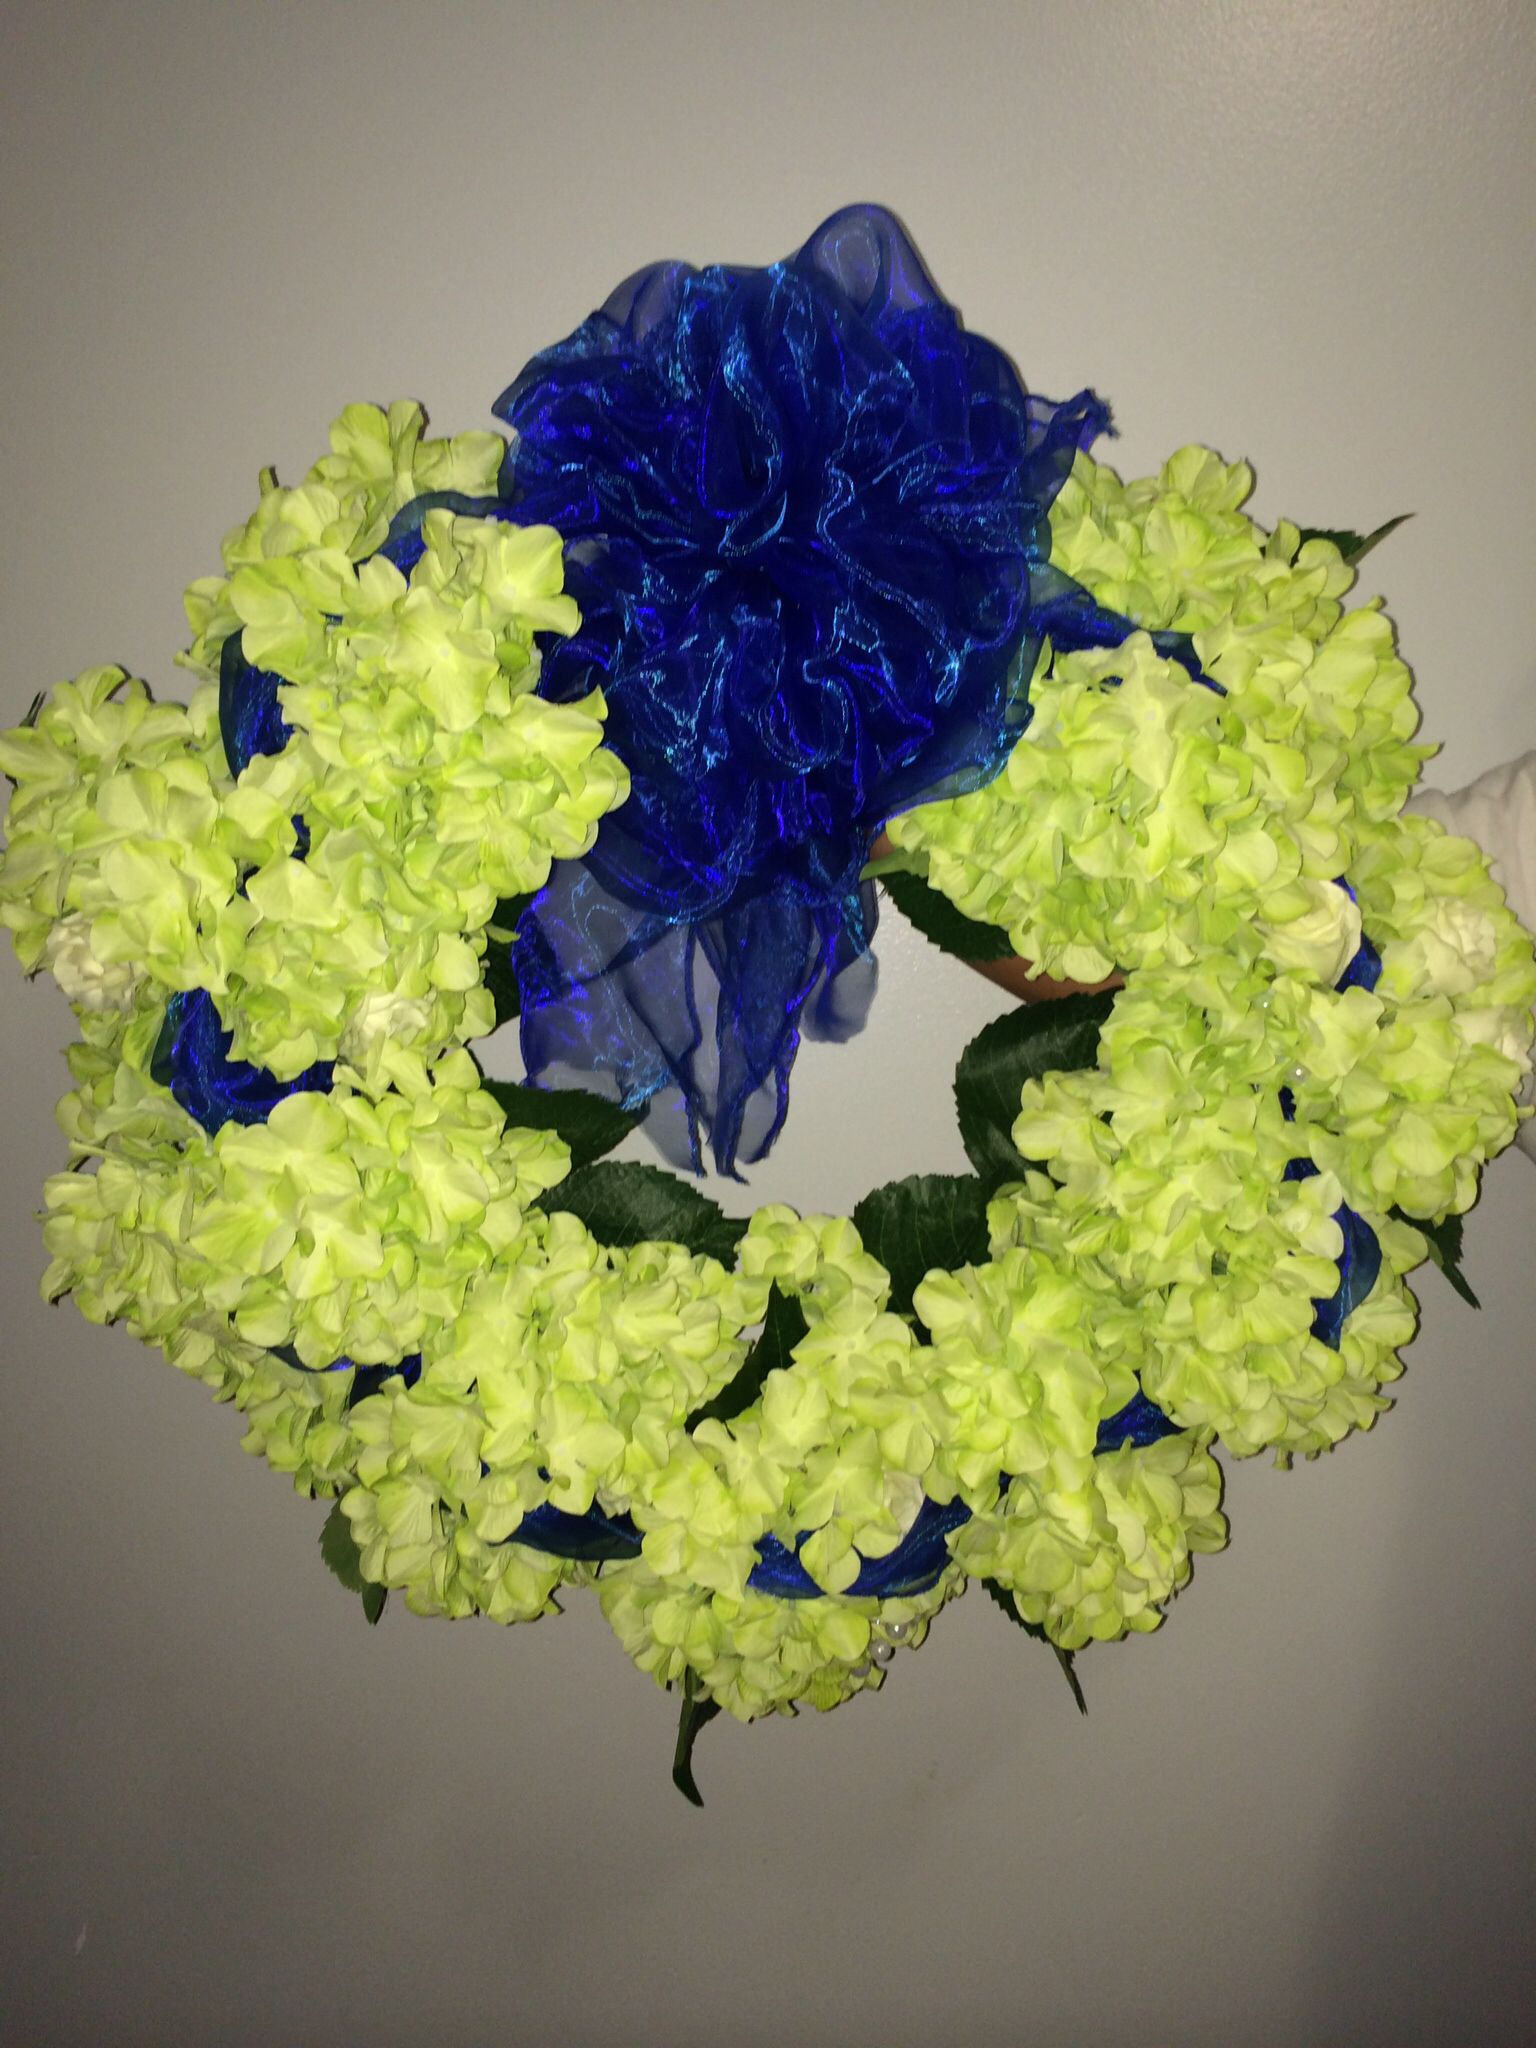 Hydrangea wreath, made from the bridesmaids bouquets and flower arrangements left over from the wedding decorations